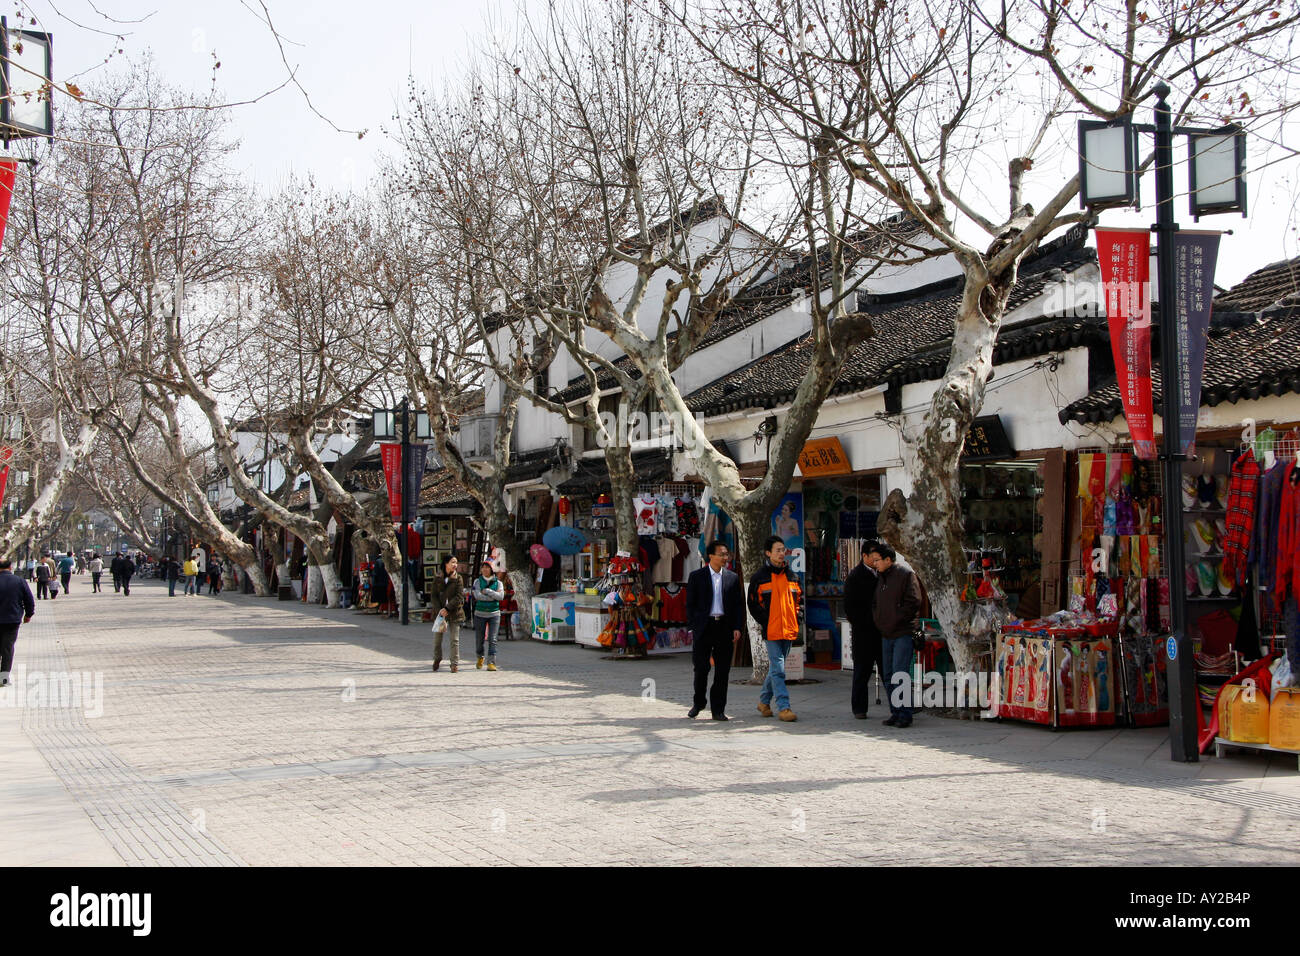 Street of  tourist shops at the entrance to the Humble Administrators Garden in Suzhou, China - Stock Image